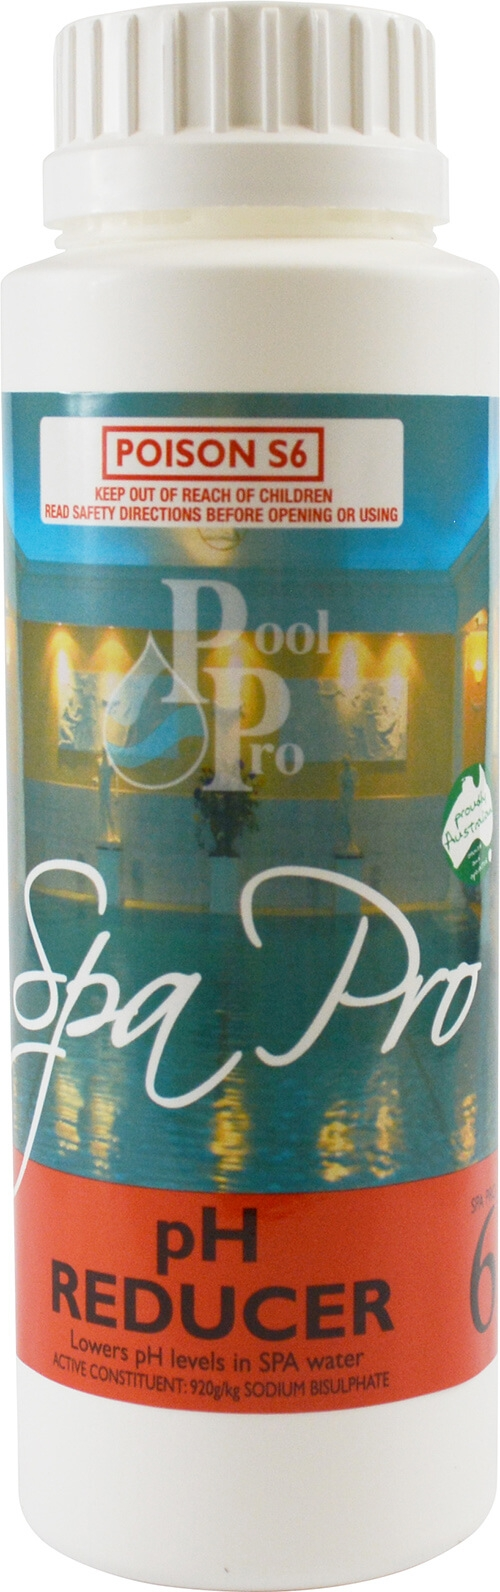 Spa Pro pH Reducer